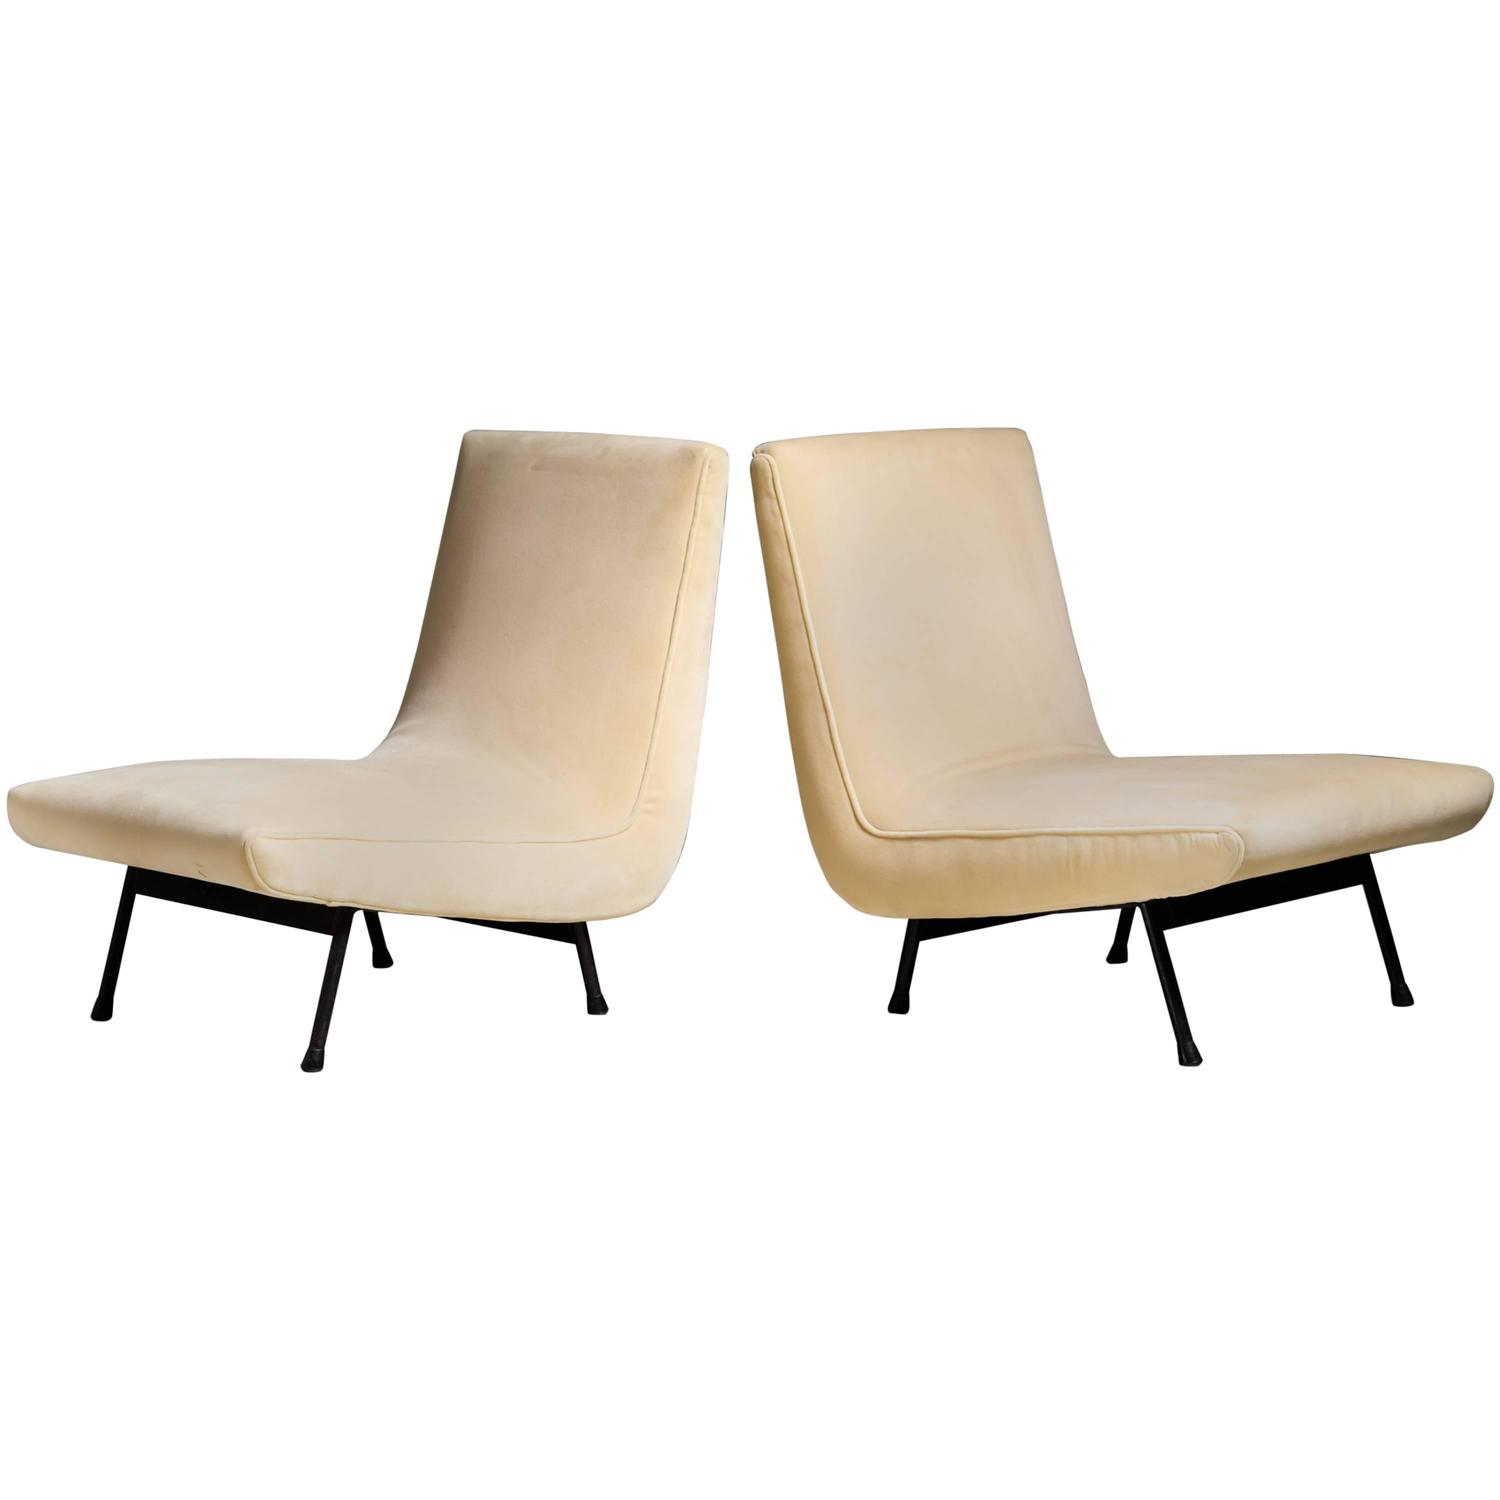 Picture of: Pair Of Cream White Slipper Chairs France 1950s For Sale At 1stdibs